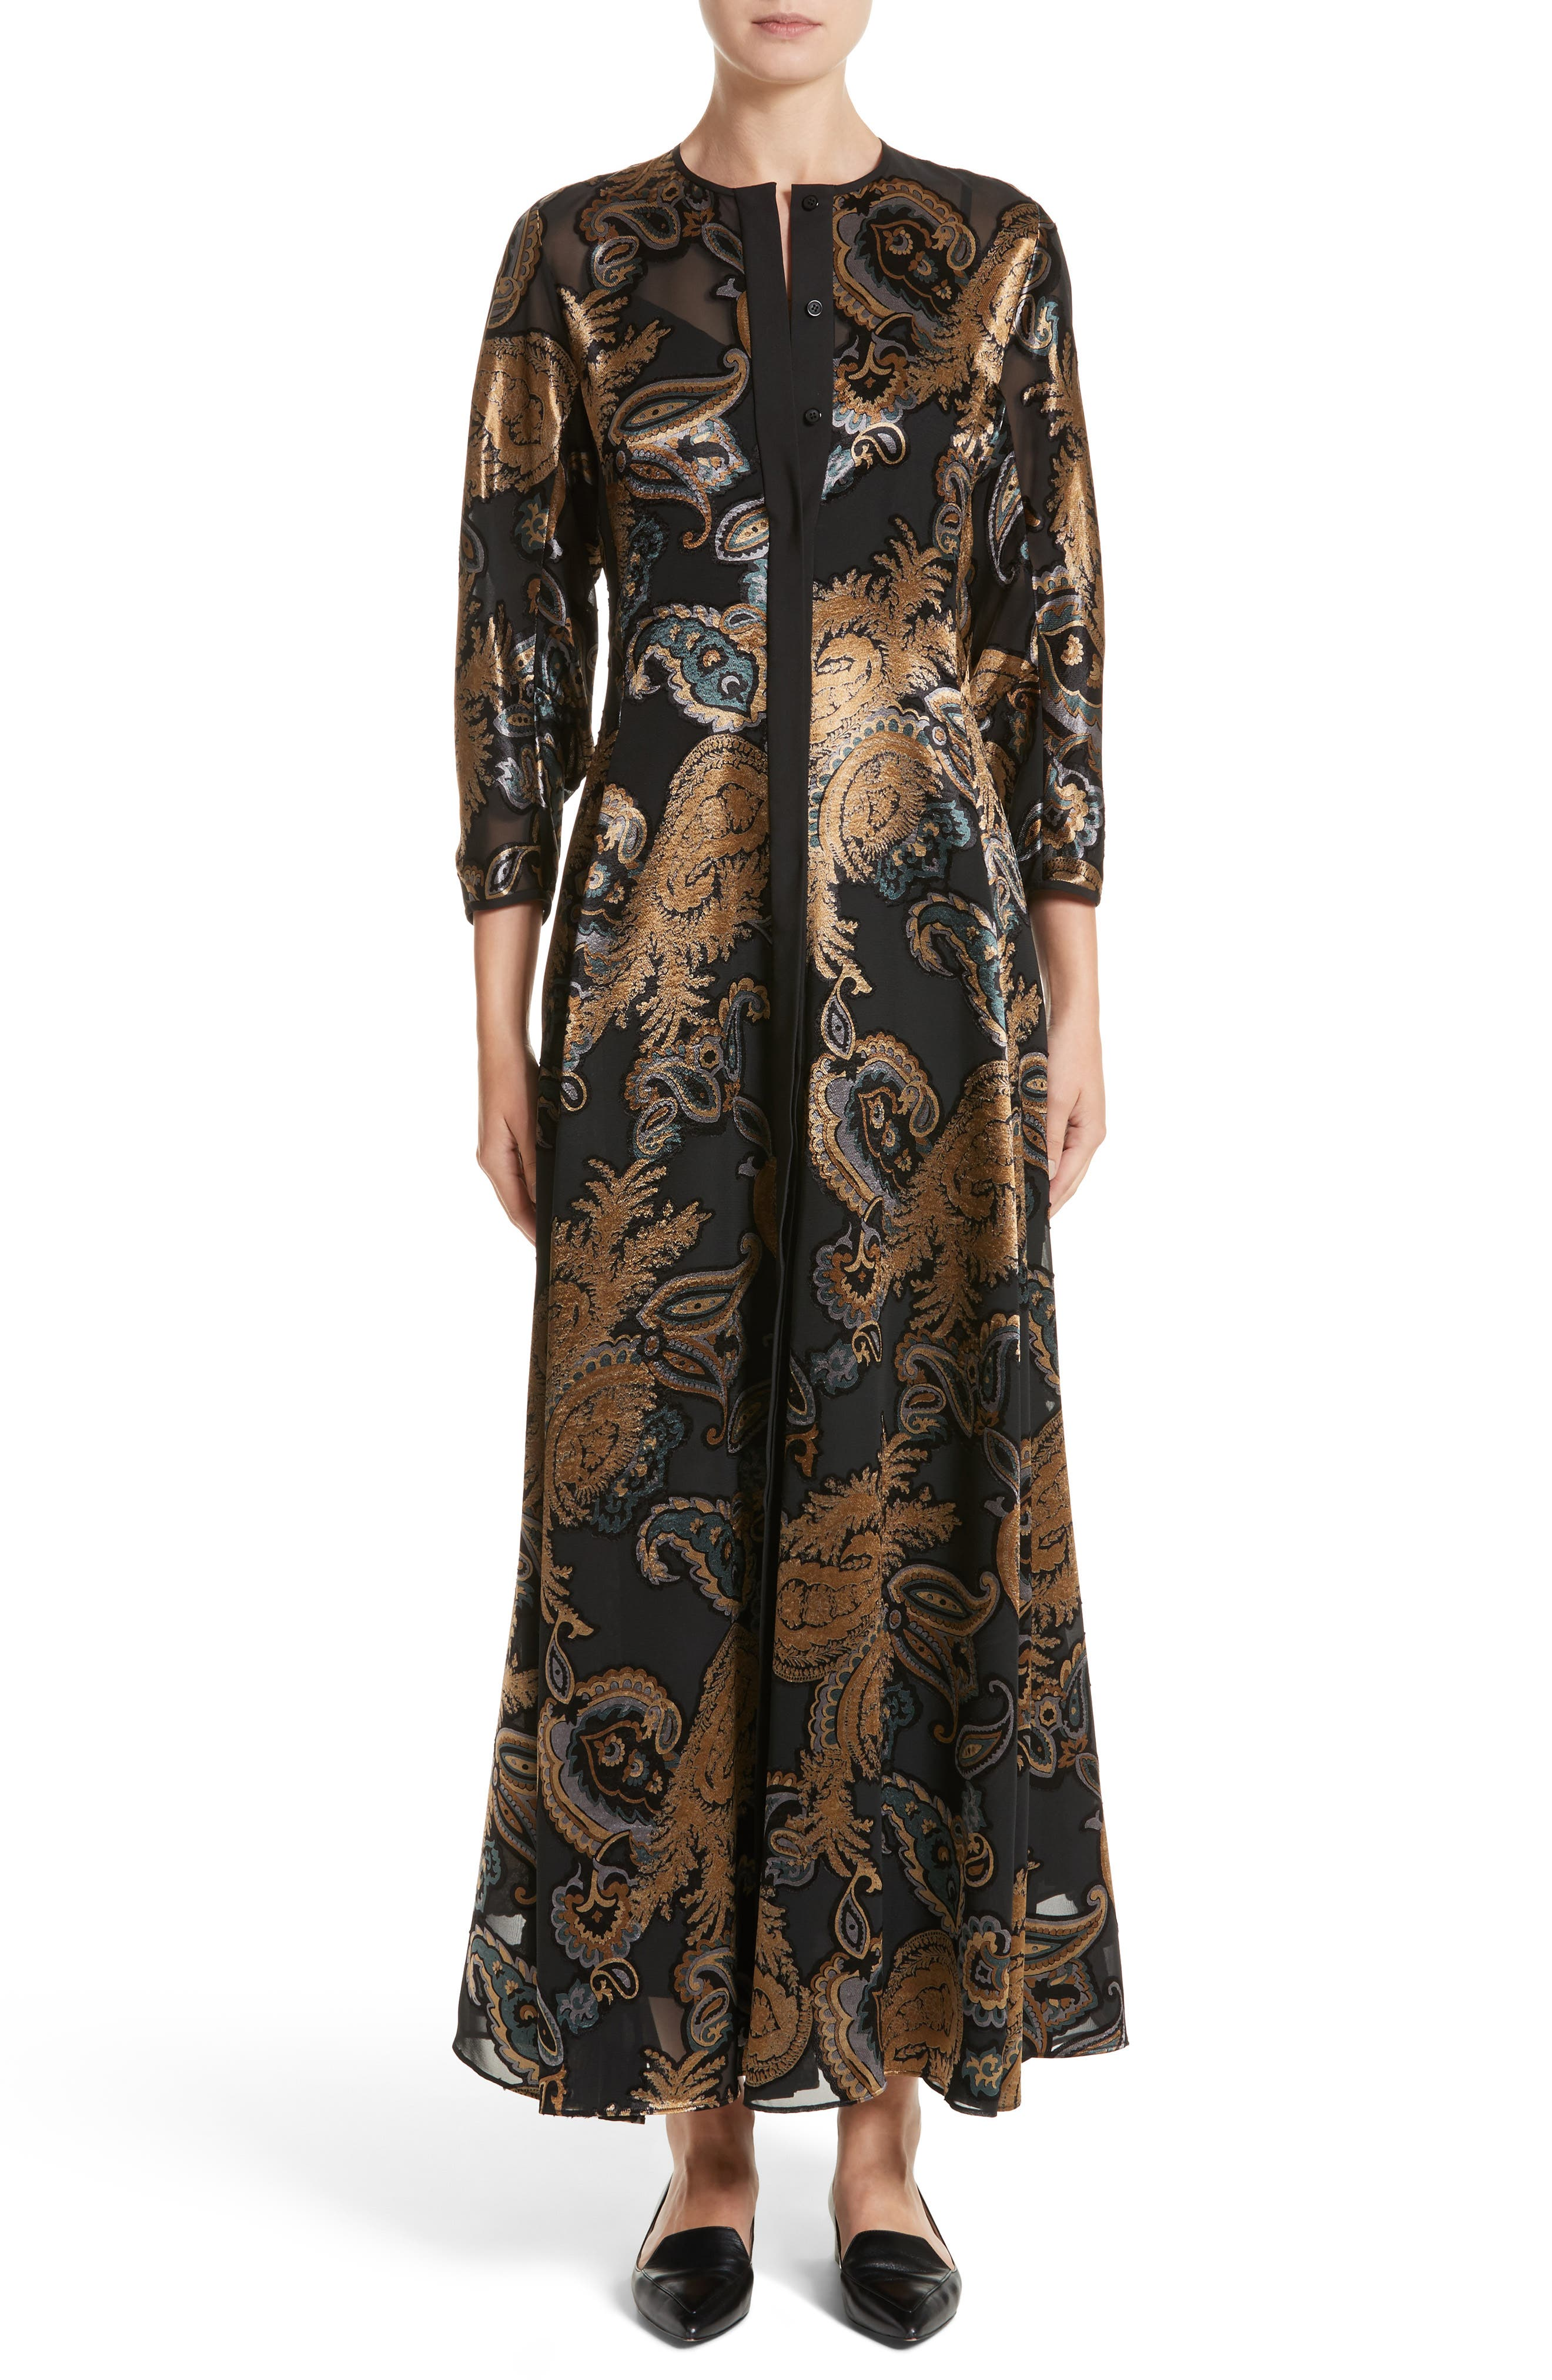 Alternate Image 1 Selected - Lafayette 148 New York Cadenza Renaissance Paisley Devoré Dress